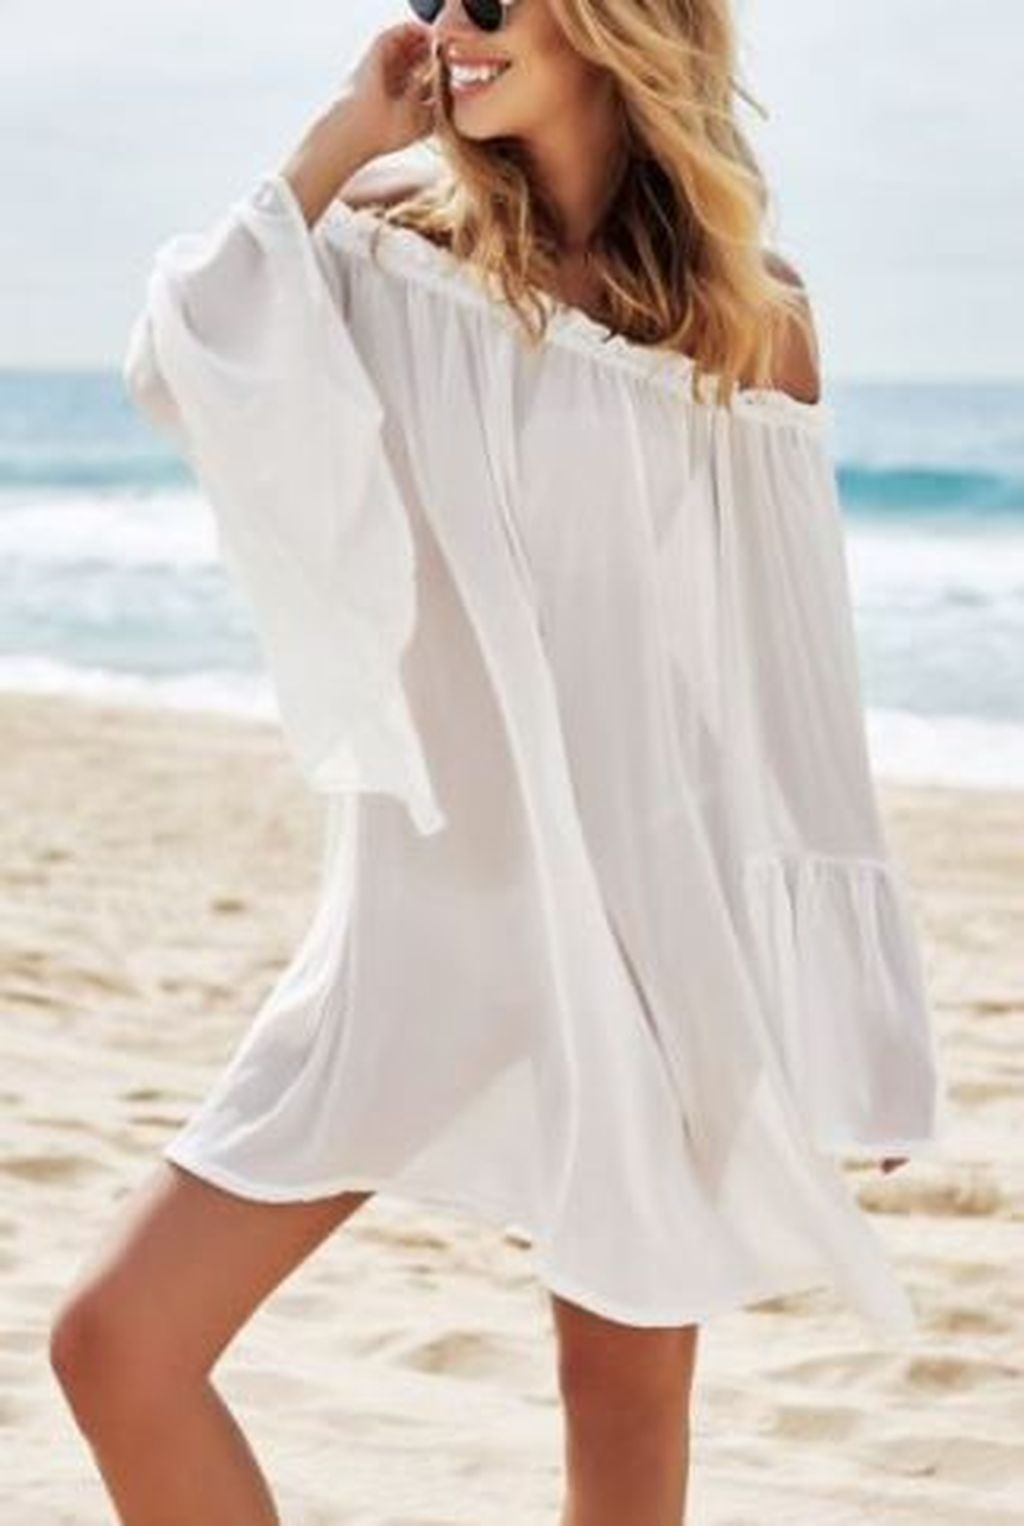 Charming Summer Outfits Ideas